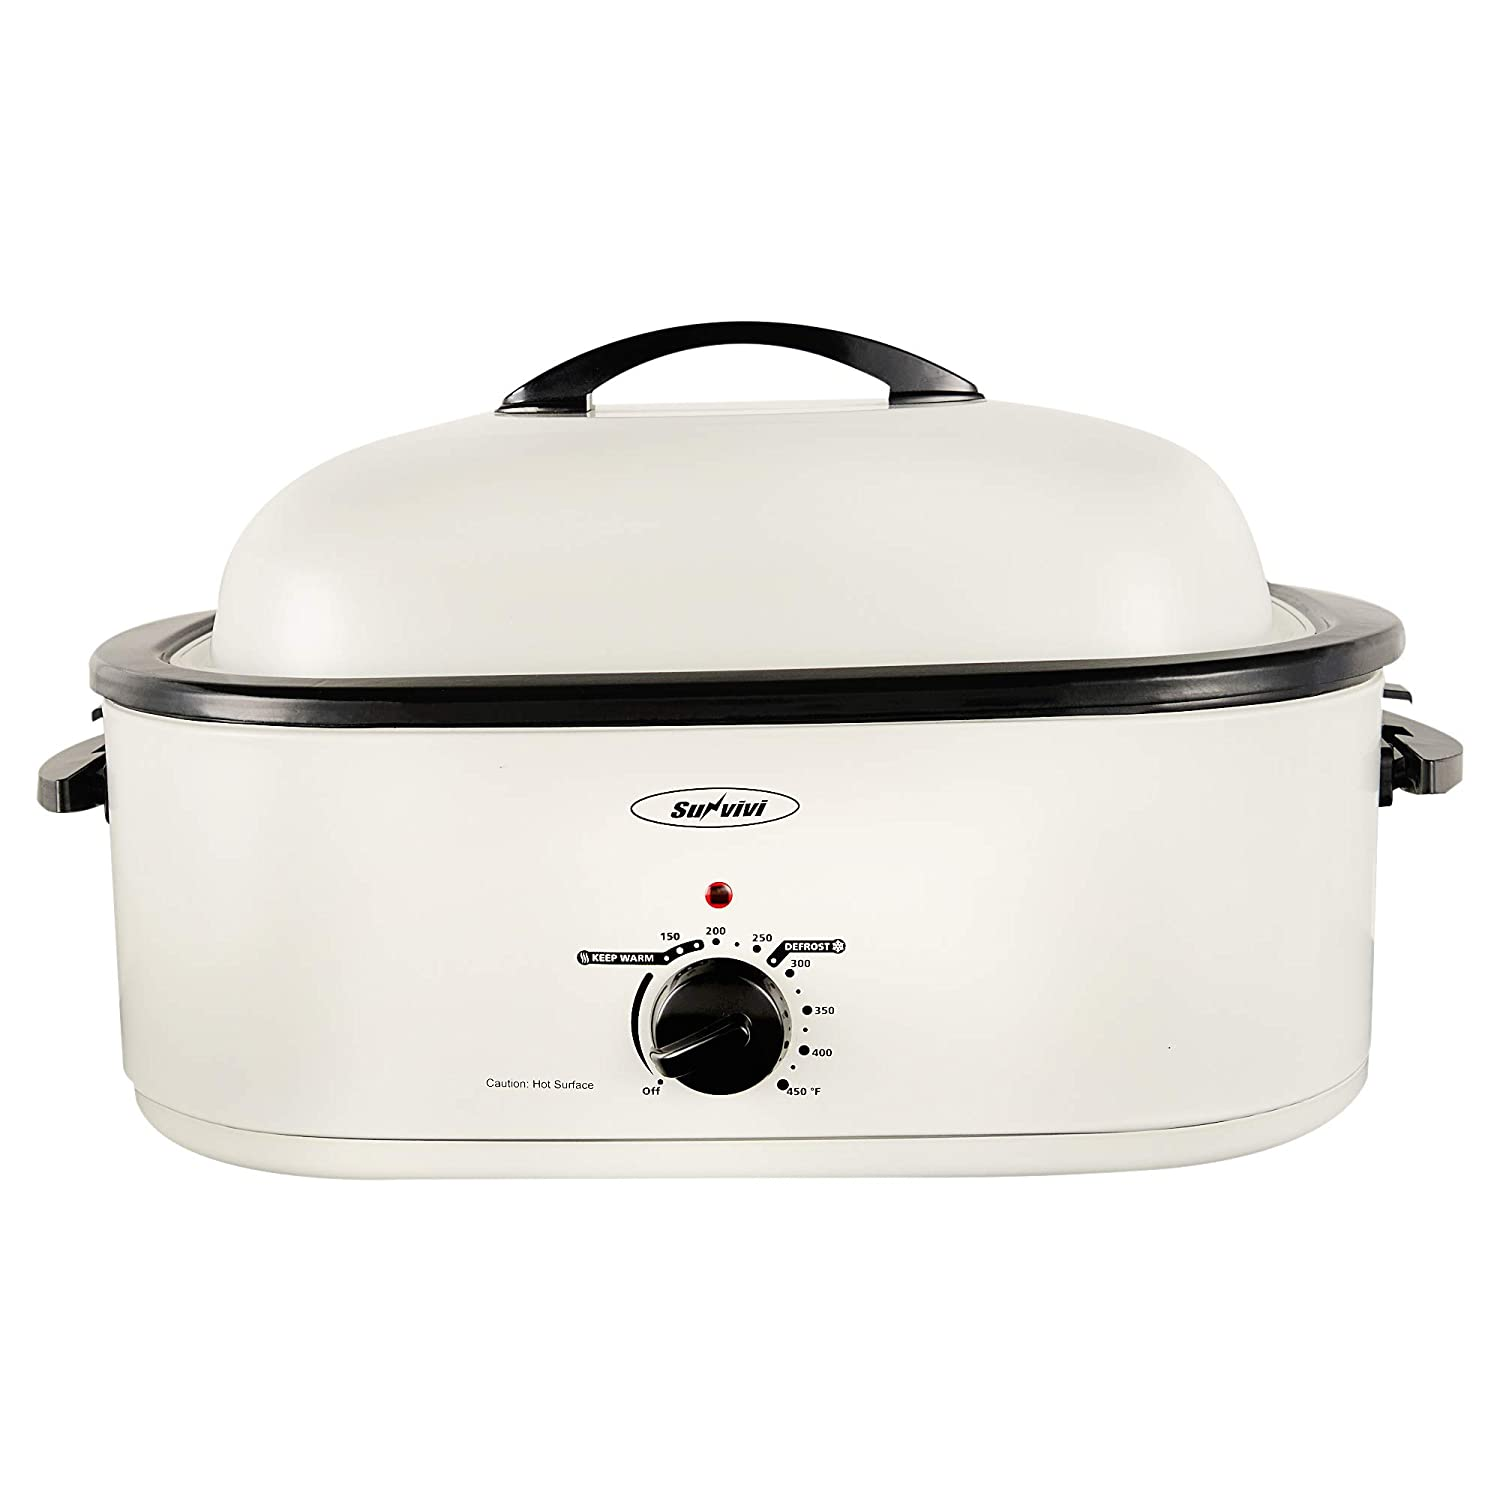 Sunvivi Electric Roaster Oven with Self-Basting Lid, 18-Quart,Removable Insert Pot, Full-range Temperature Control and Cool-Touch Handles, White Body and Lid